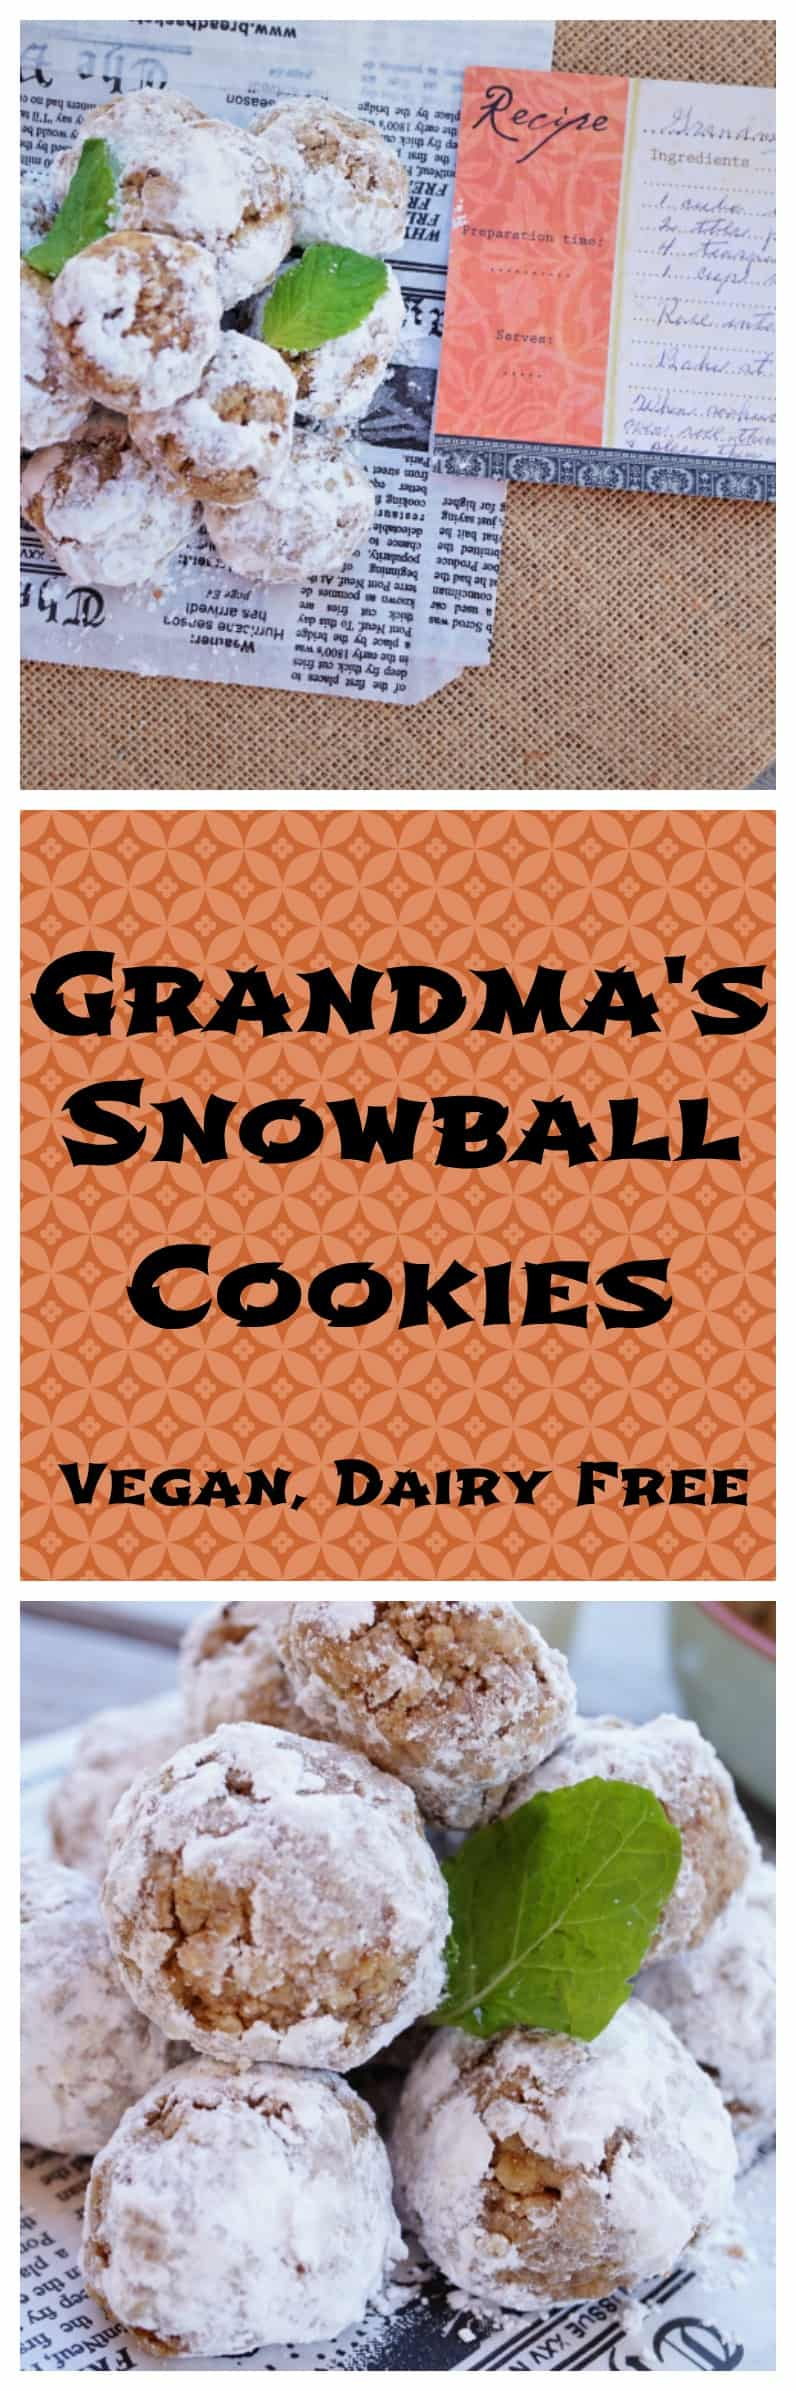 healthy snowball cookies - Grandma's Recipe from @shawsimpleswaps Plus they are Vegan, Dairy Free & can be made GF too!